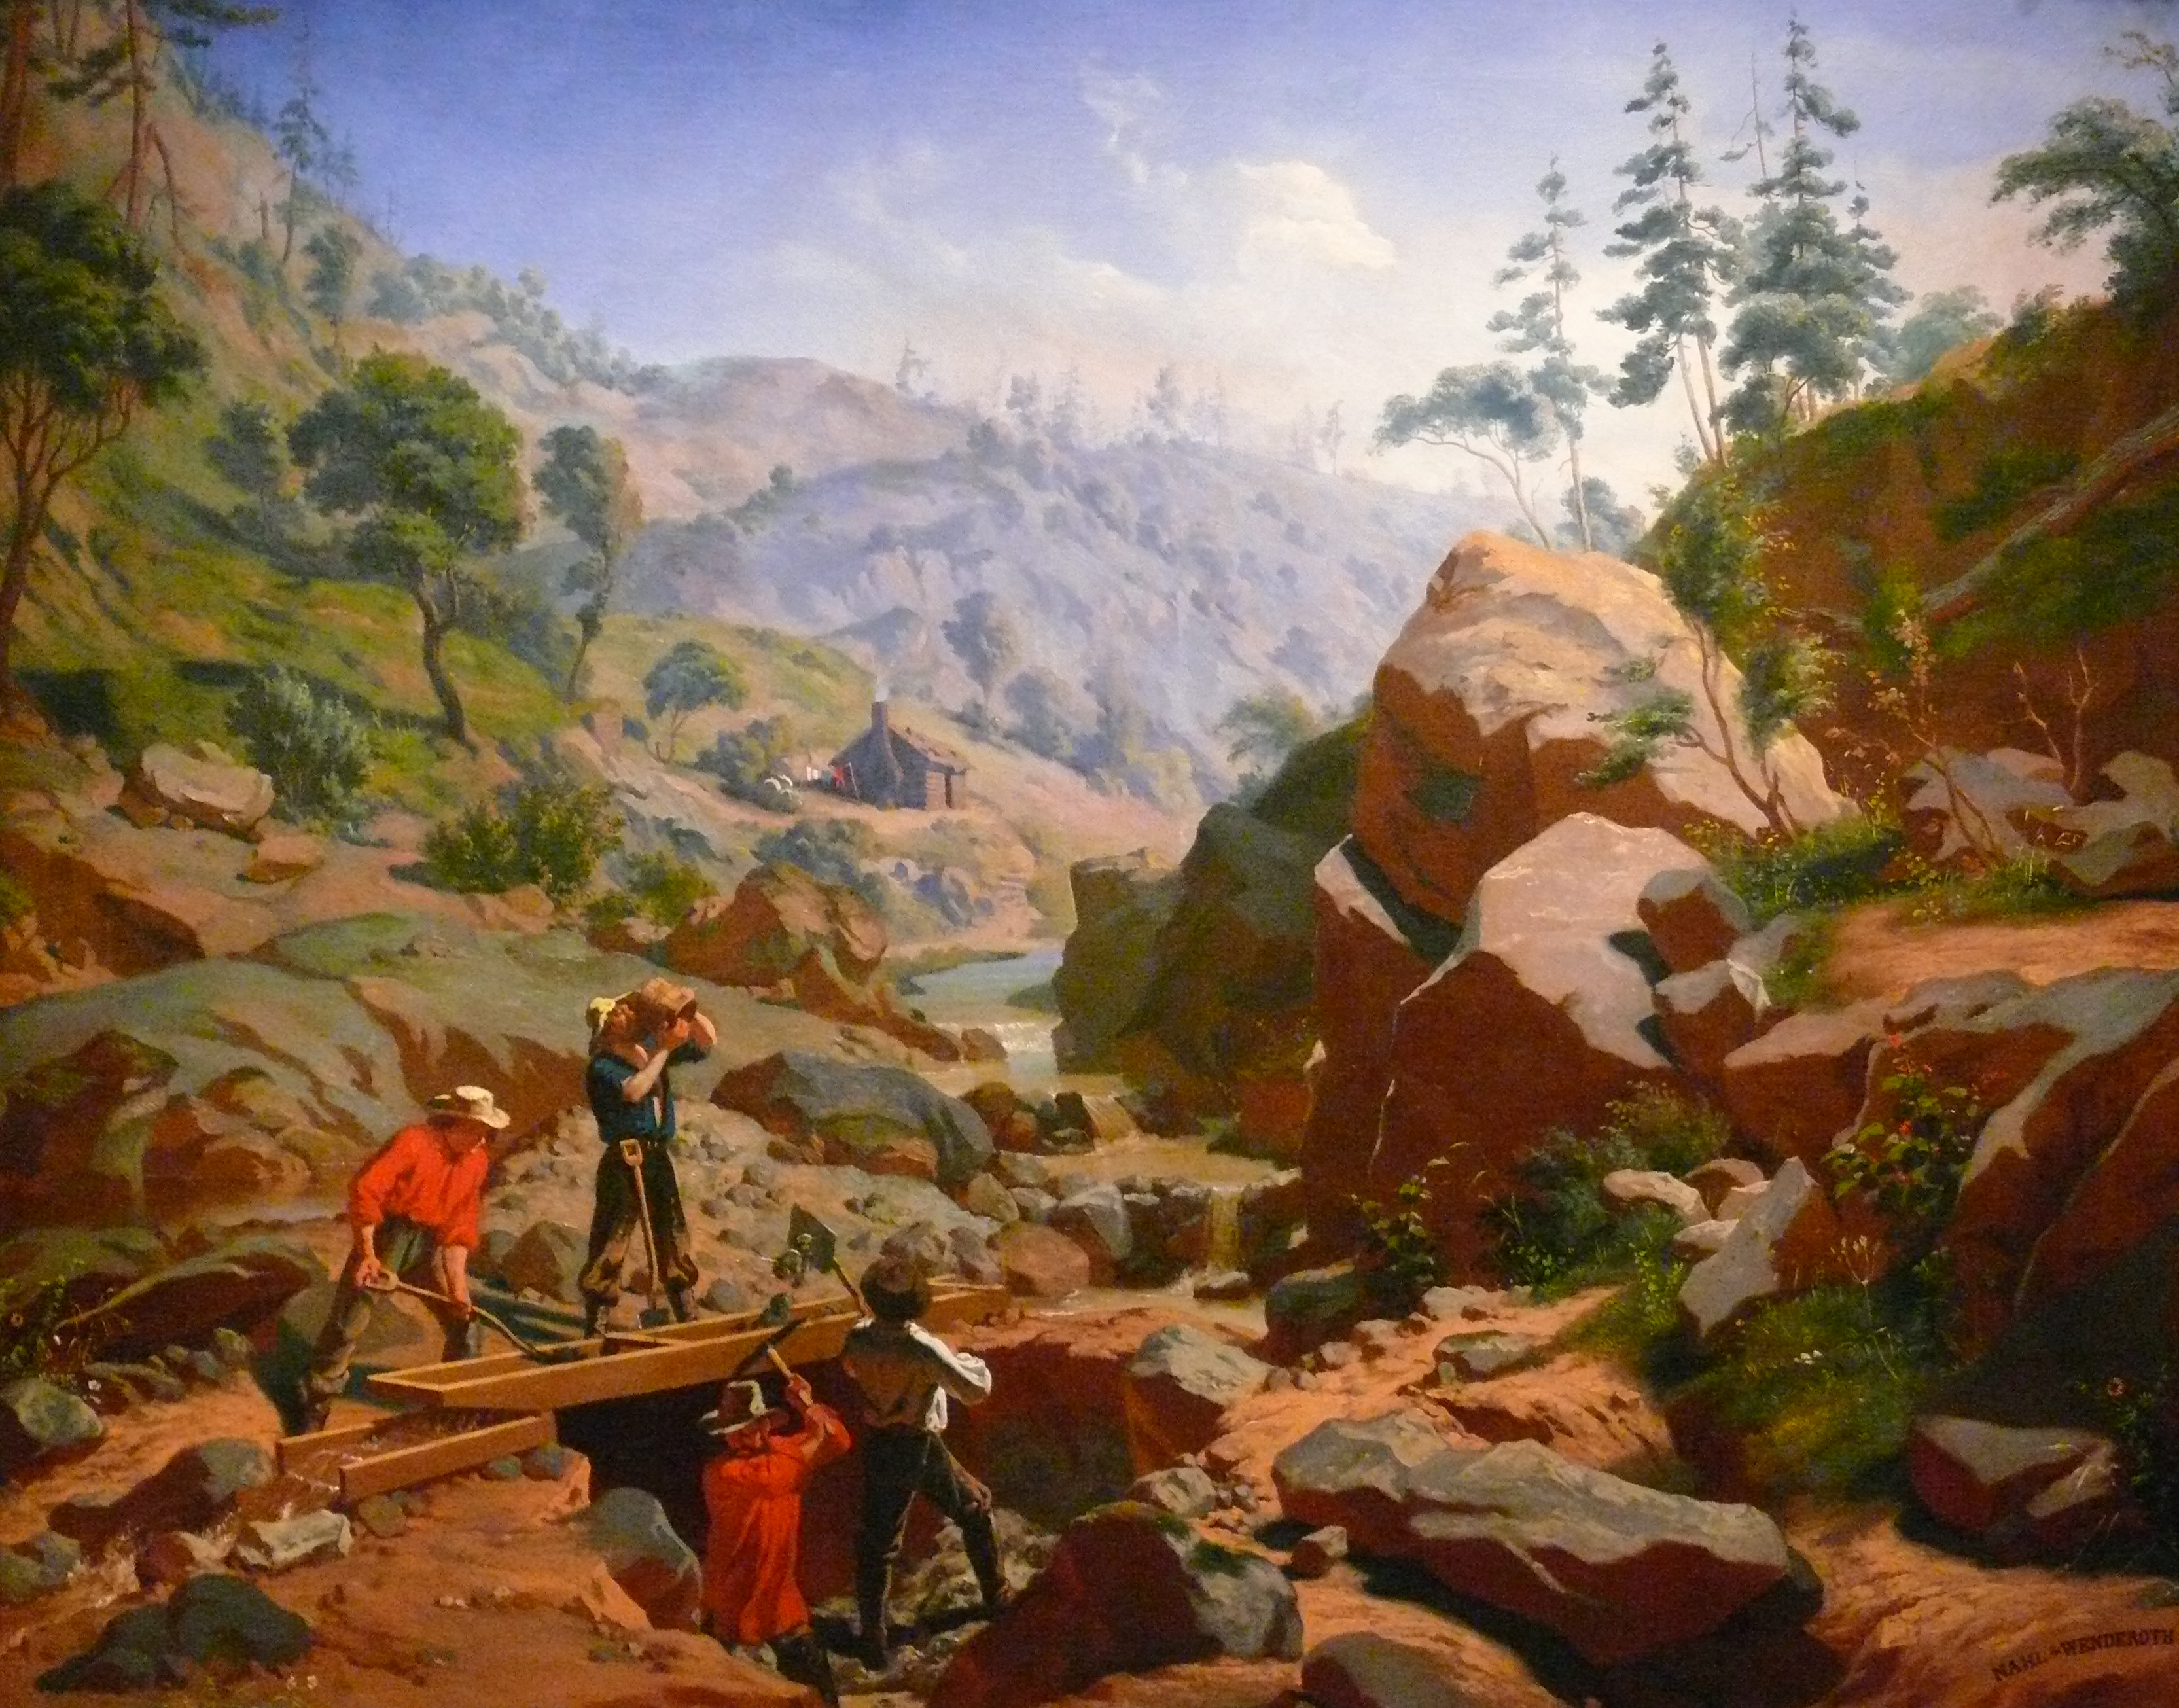 Miners in the Sierras, 1851